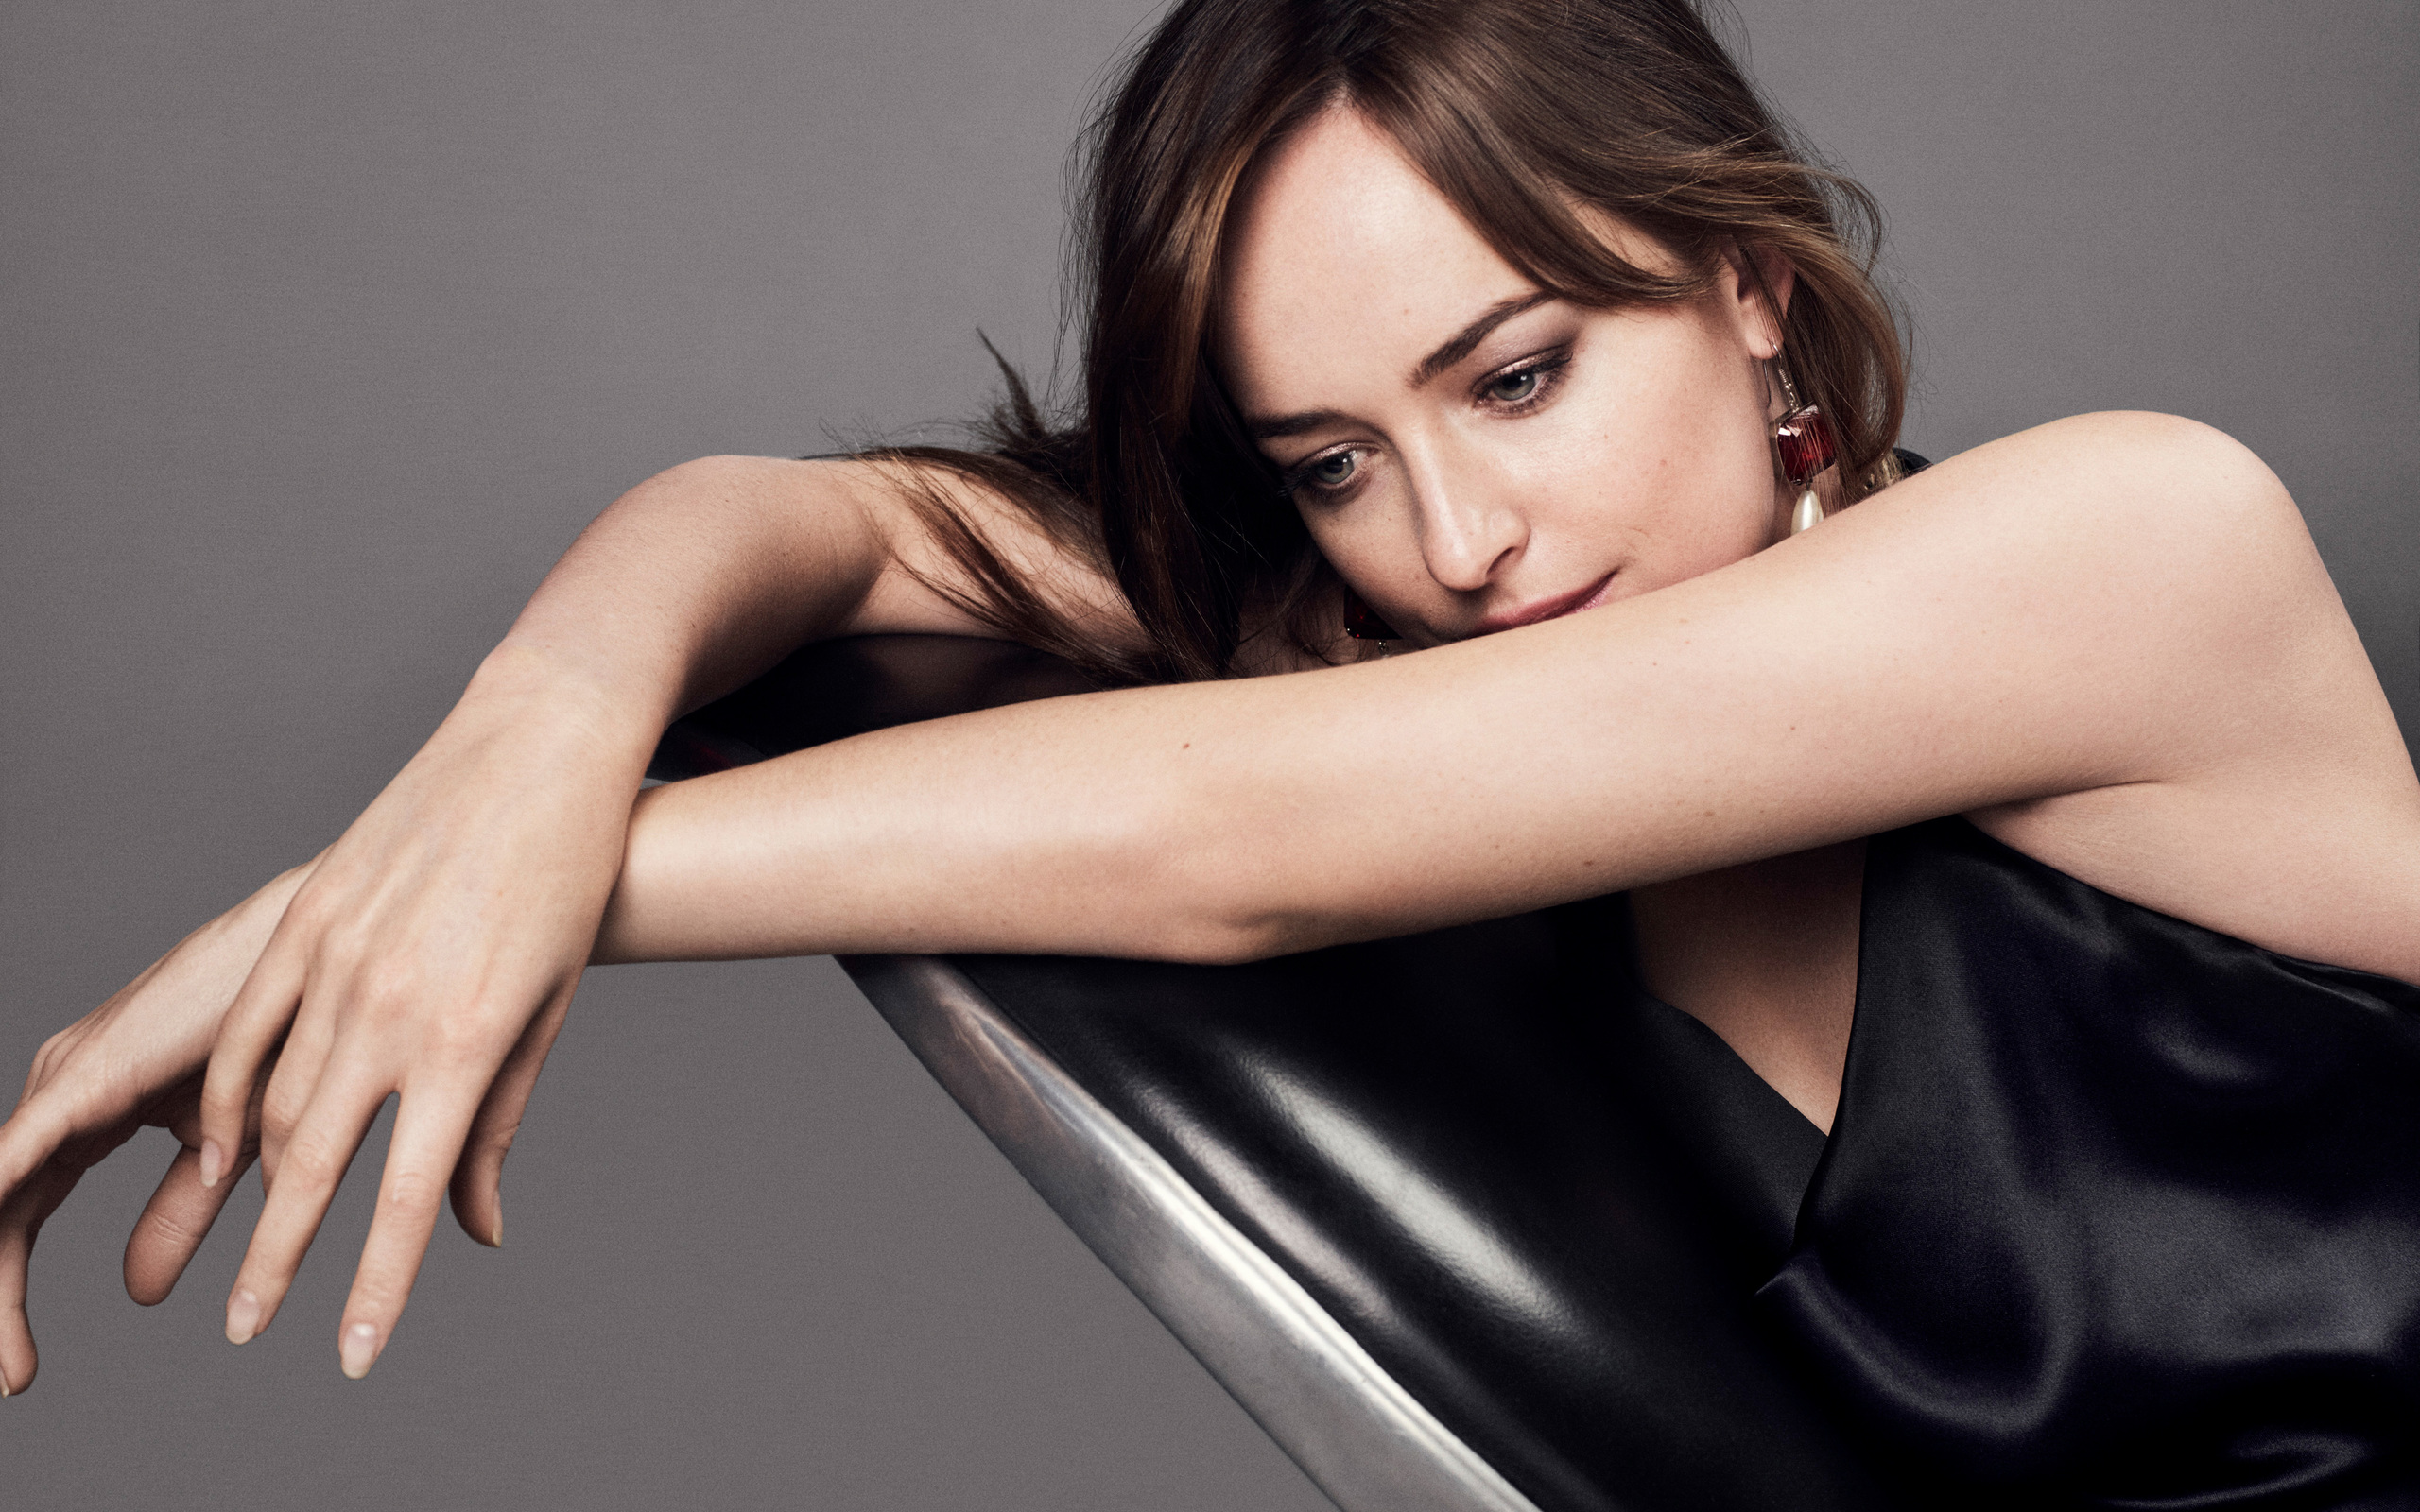 dakota-johnson-fifty-shades-darker-photoshoot-wide-2560x1600